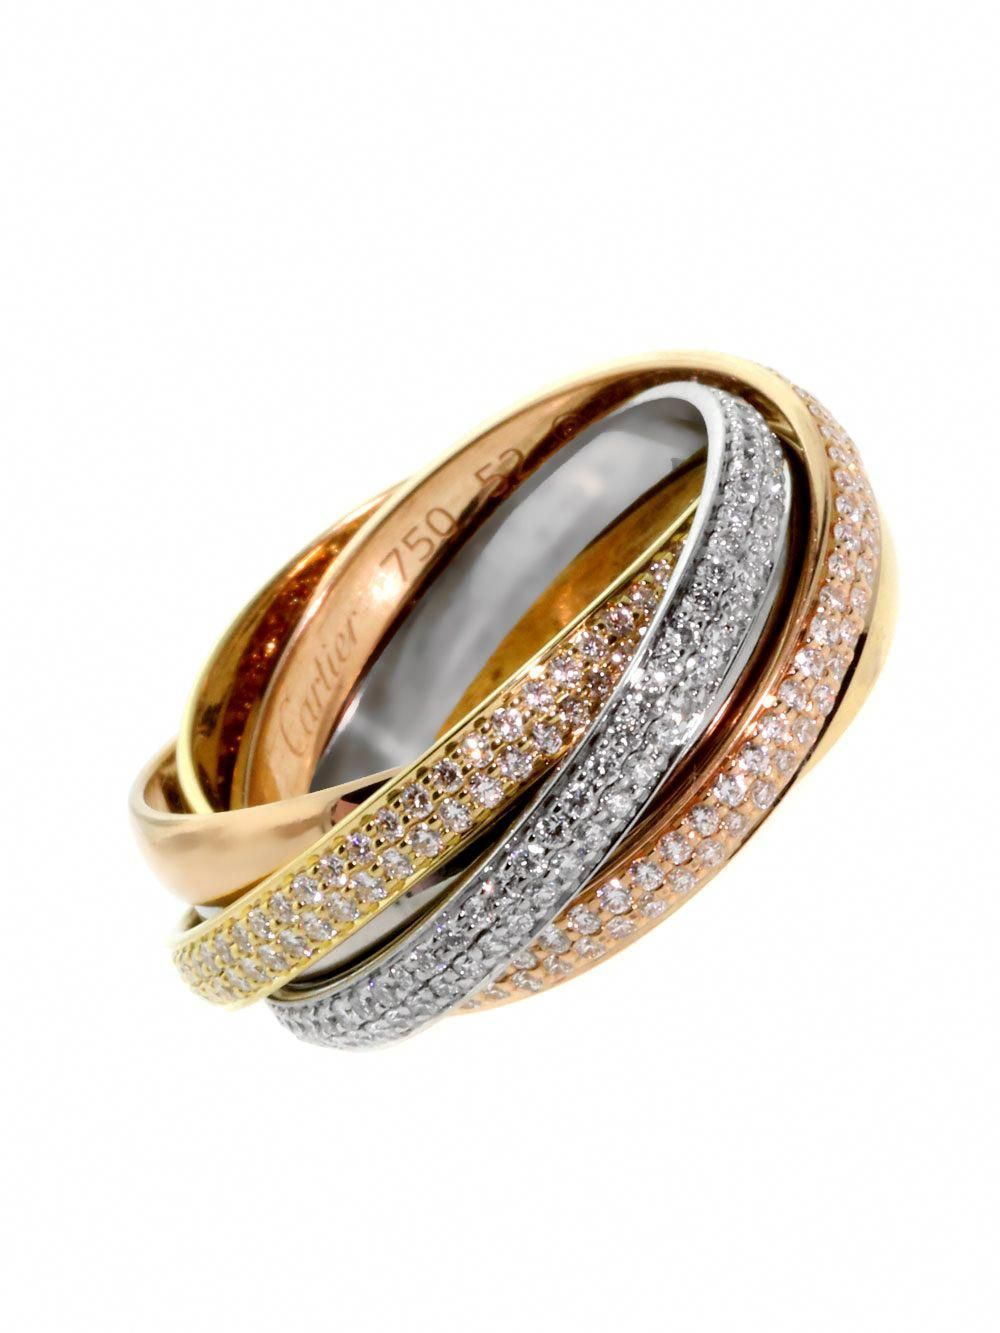 17++ Famous jewelry brands in usa ideas